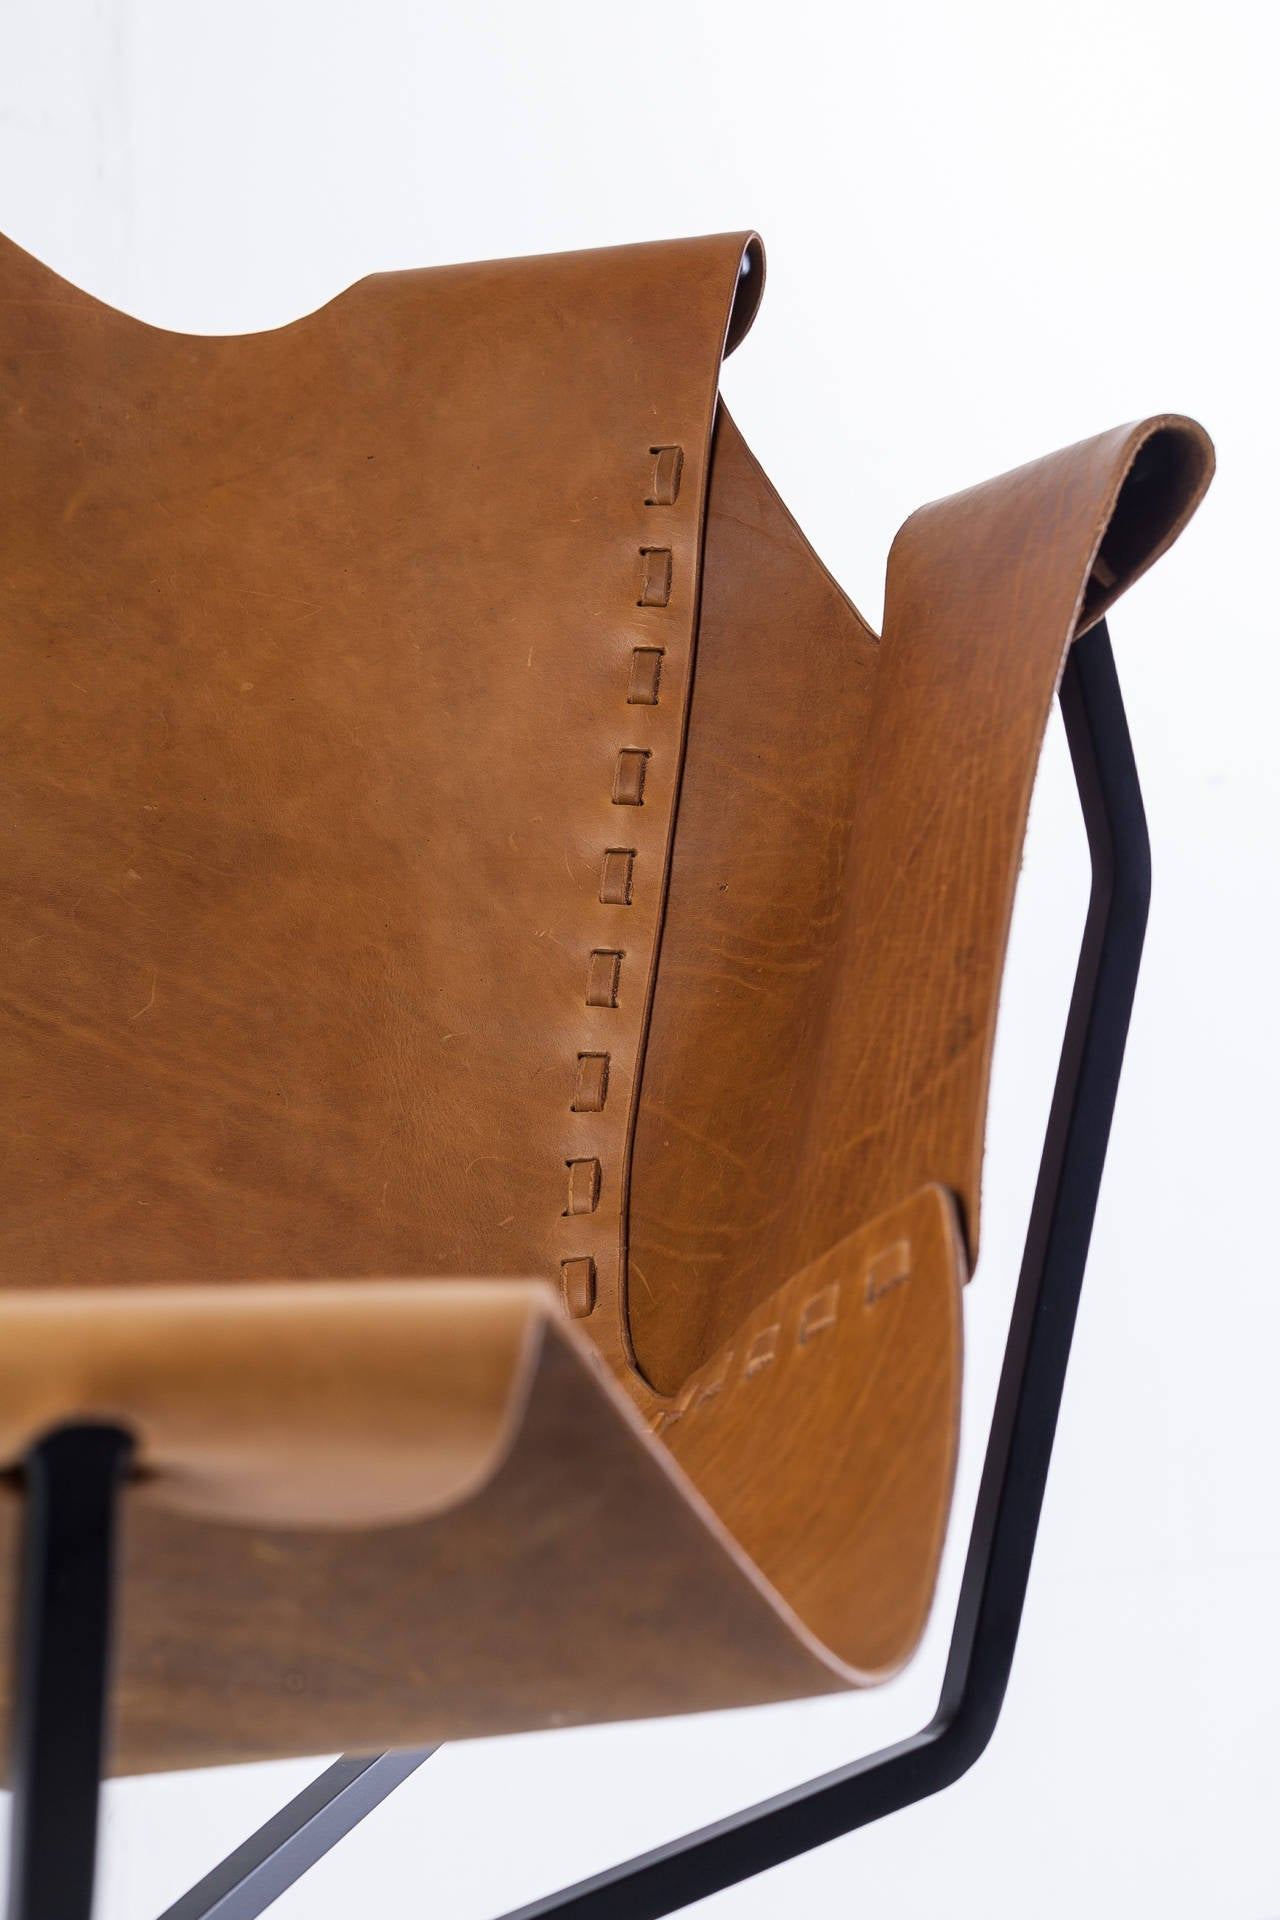 Leather Special Edition Dan Wenger Sling Chair, USA, 1970s For Sale